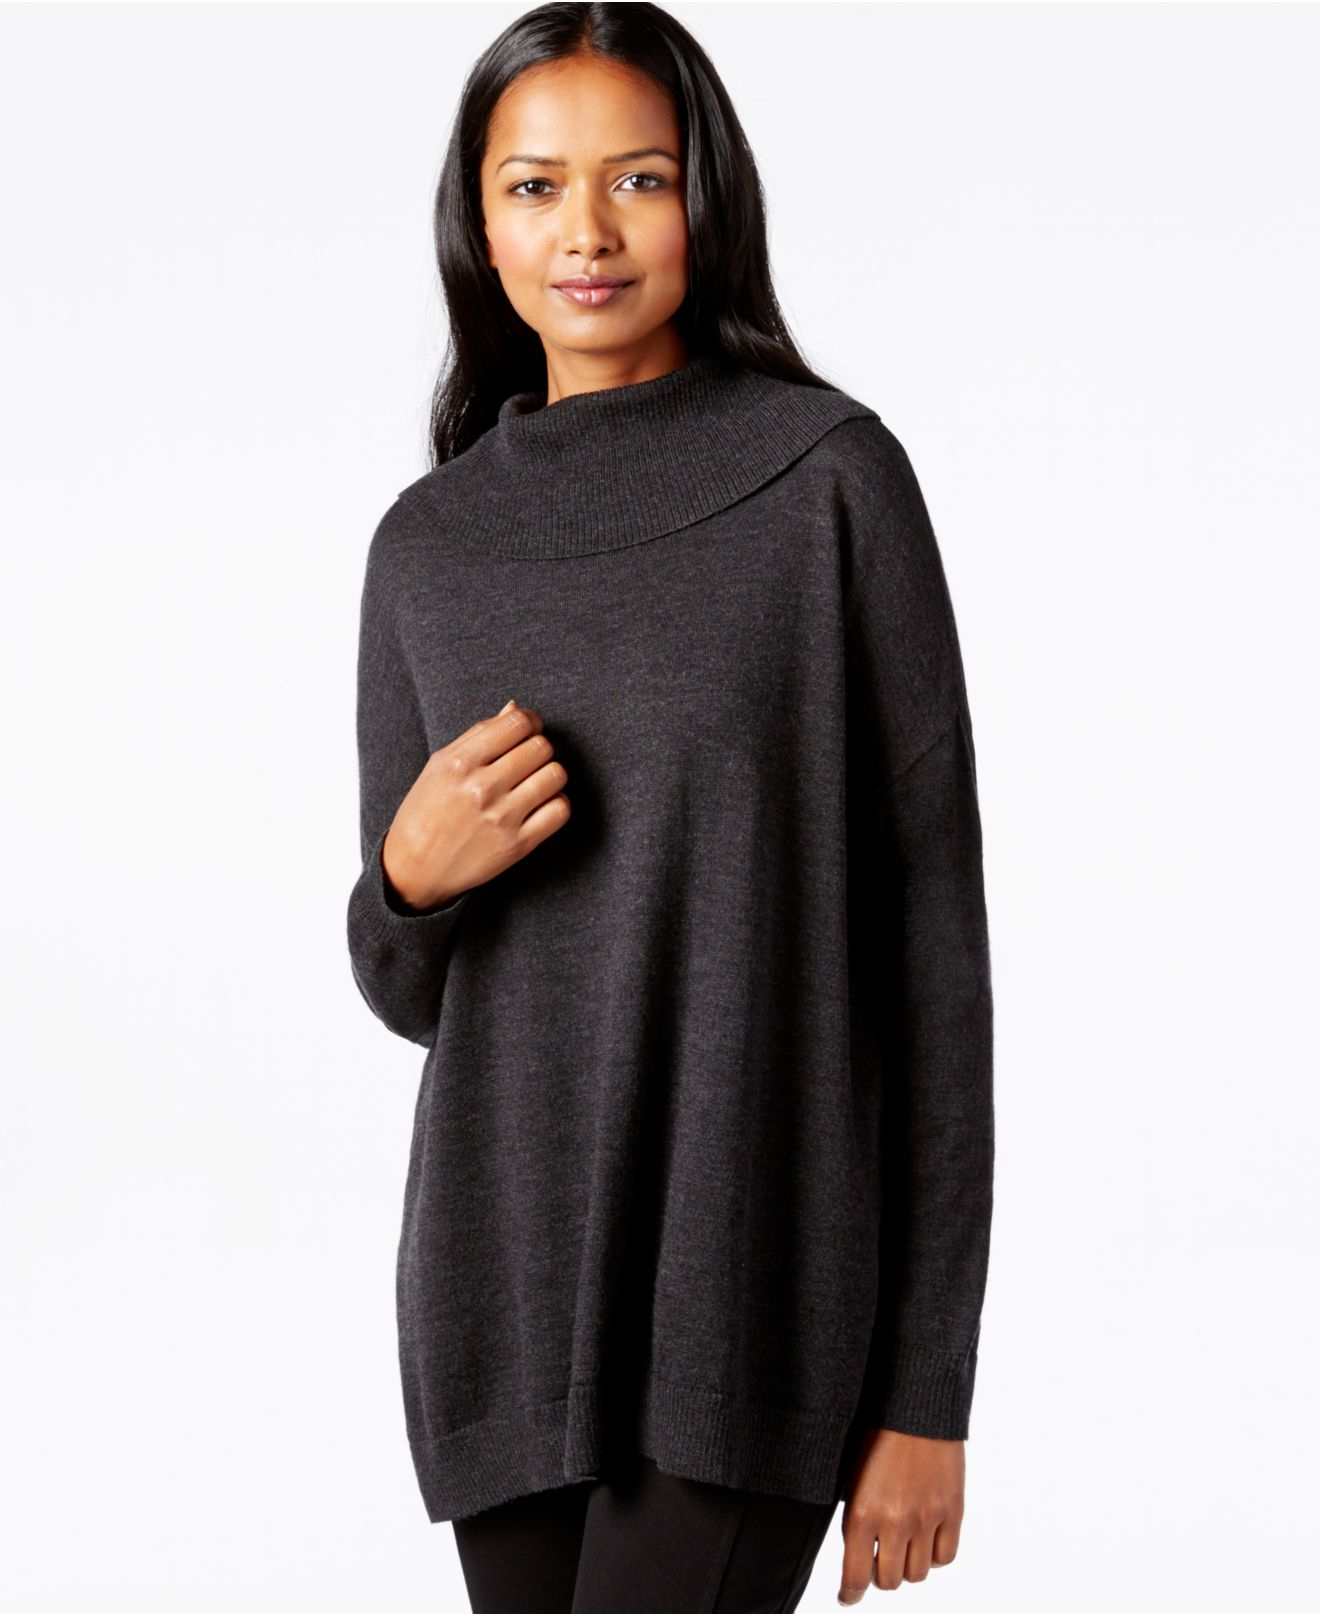 Eileen fisher Turtleneck Tunic Sweater in Gray | Lyst